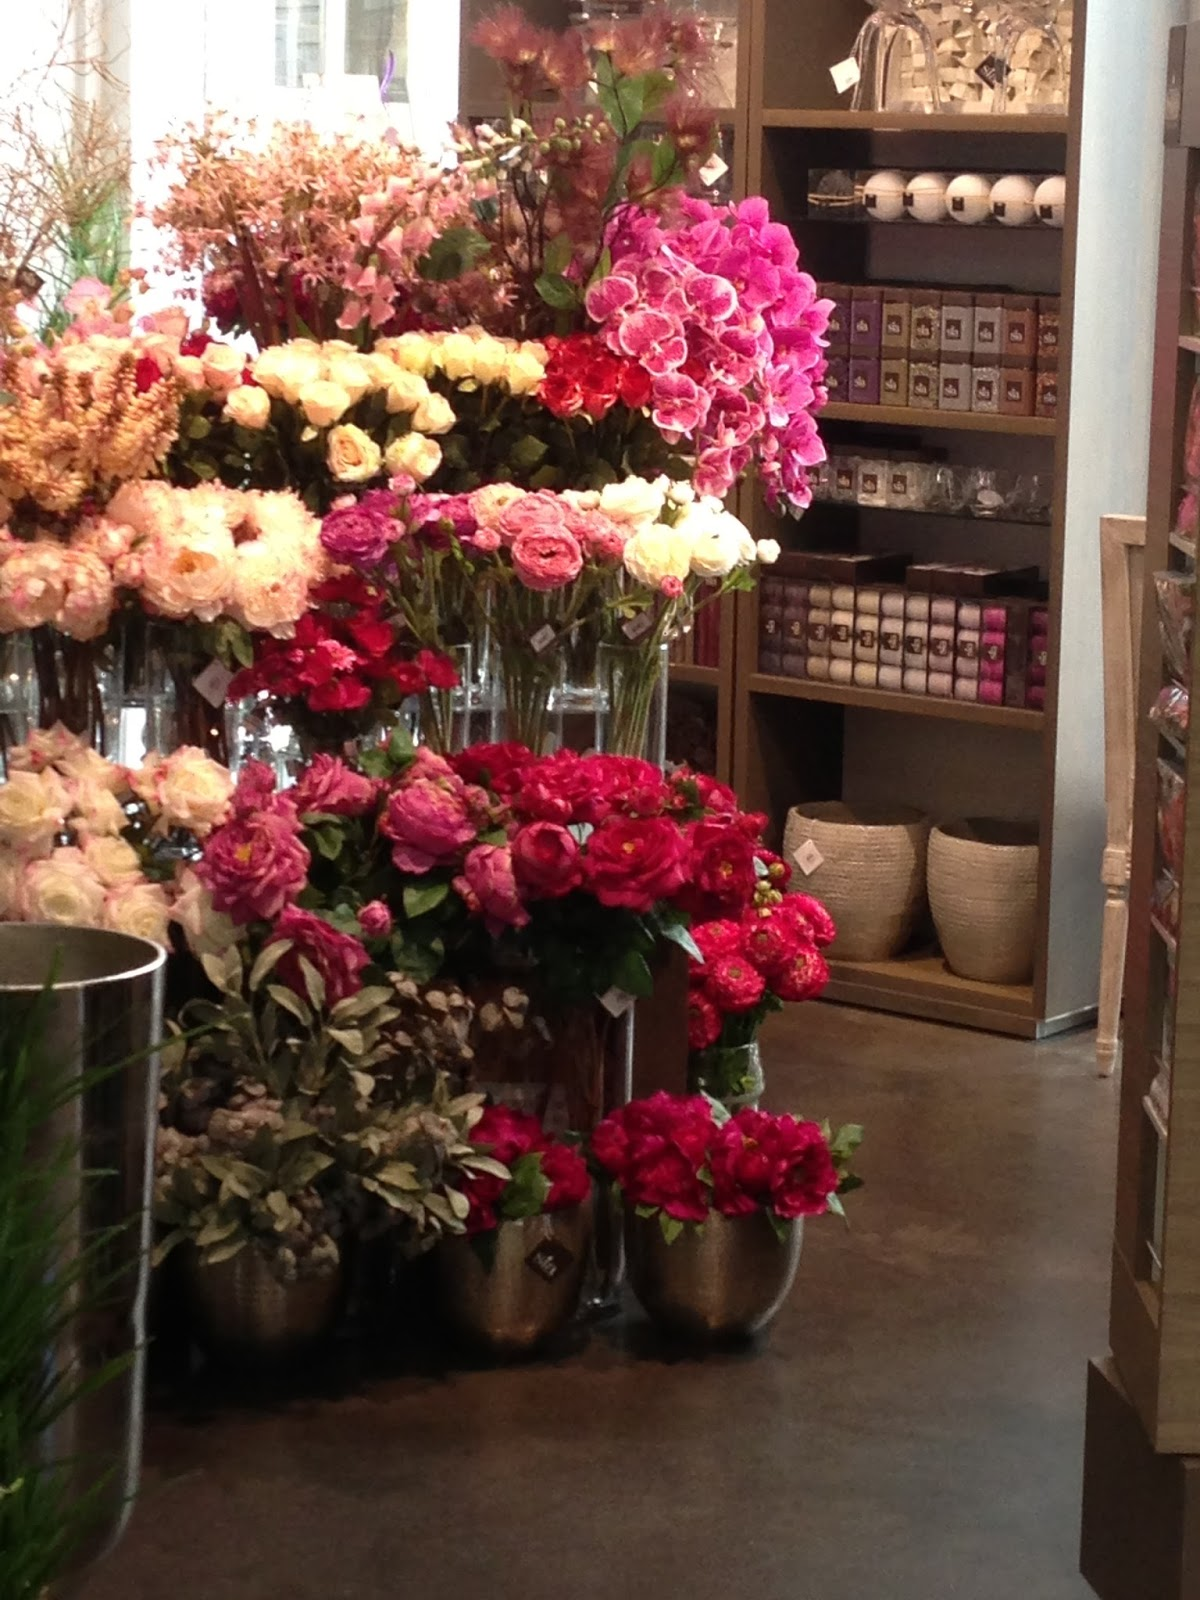 Design guy day 2 maison objet paris a stores elaborate flower display lures us in only to find it is actually a florist that sells only silk flowers so real that yes we had to touch them mightylinksfo